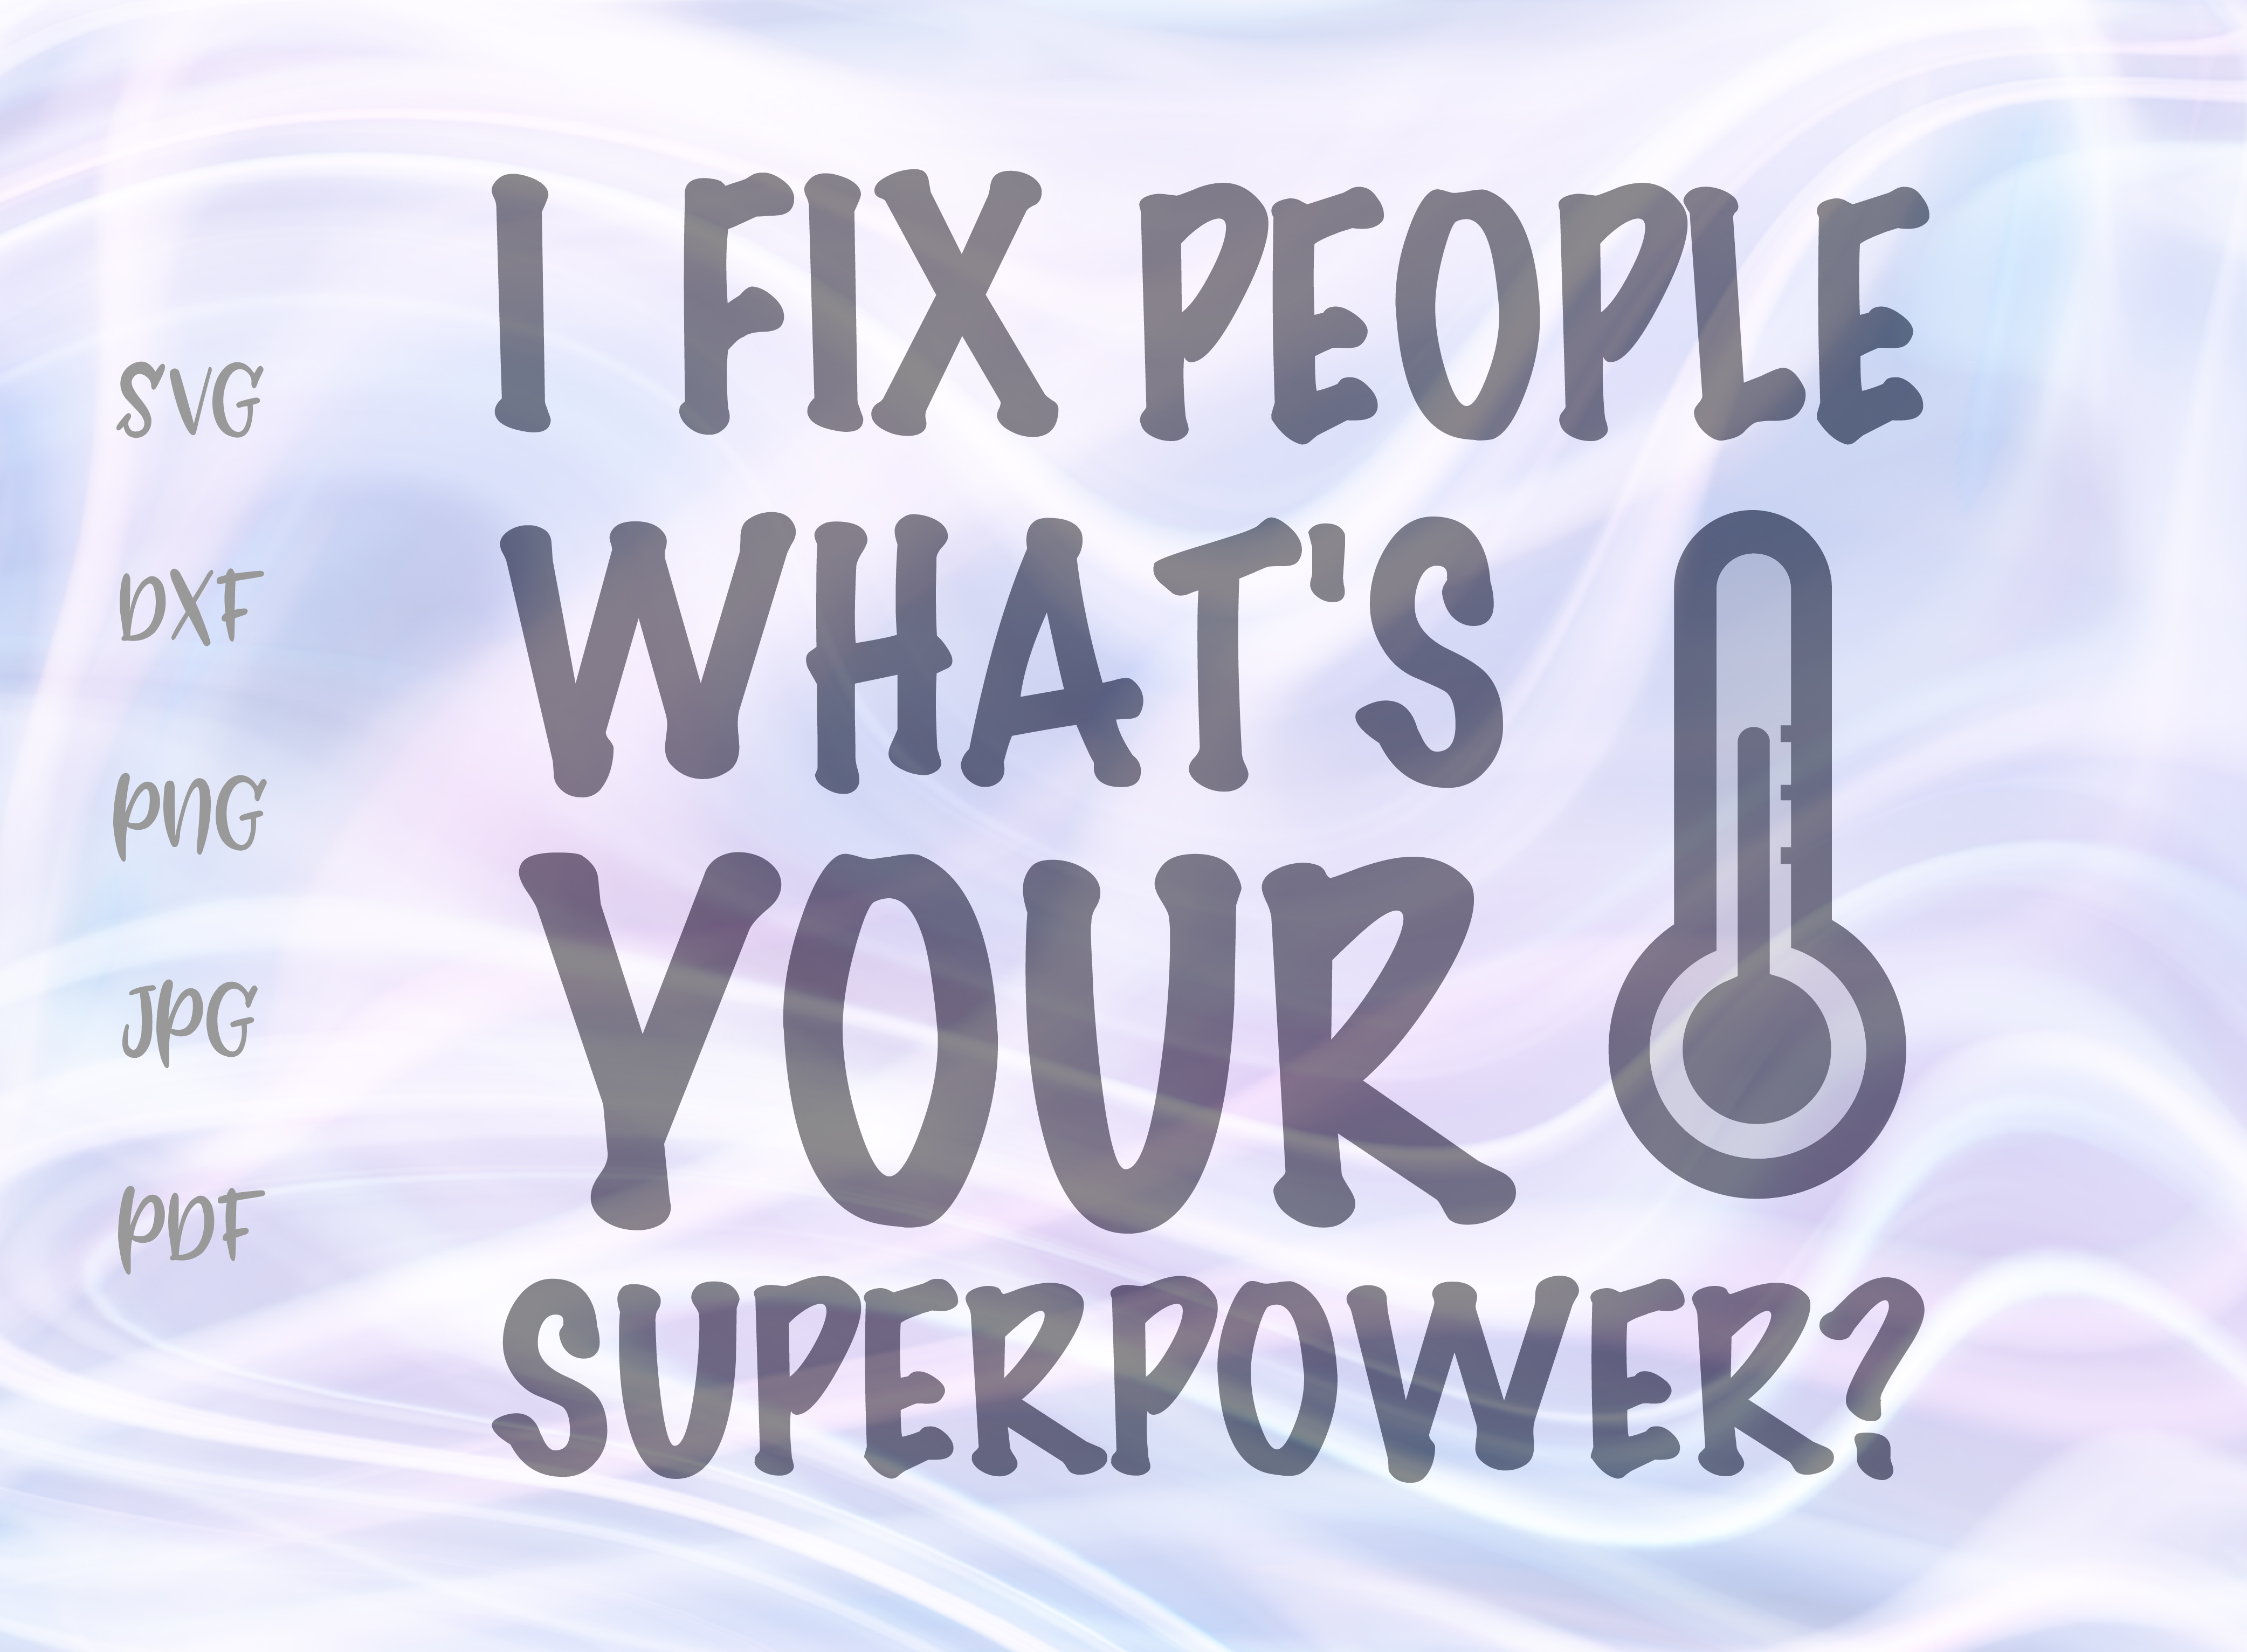 Download Free I Fix People What Is Your Superpower Svg Graphic By Digitals By for Cricut Explore, Silhouette and other cutting machines.